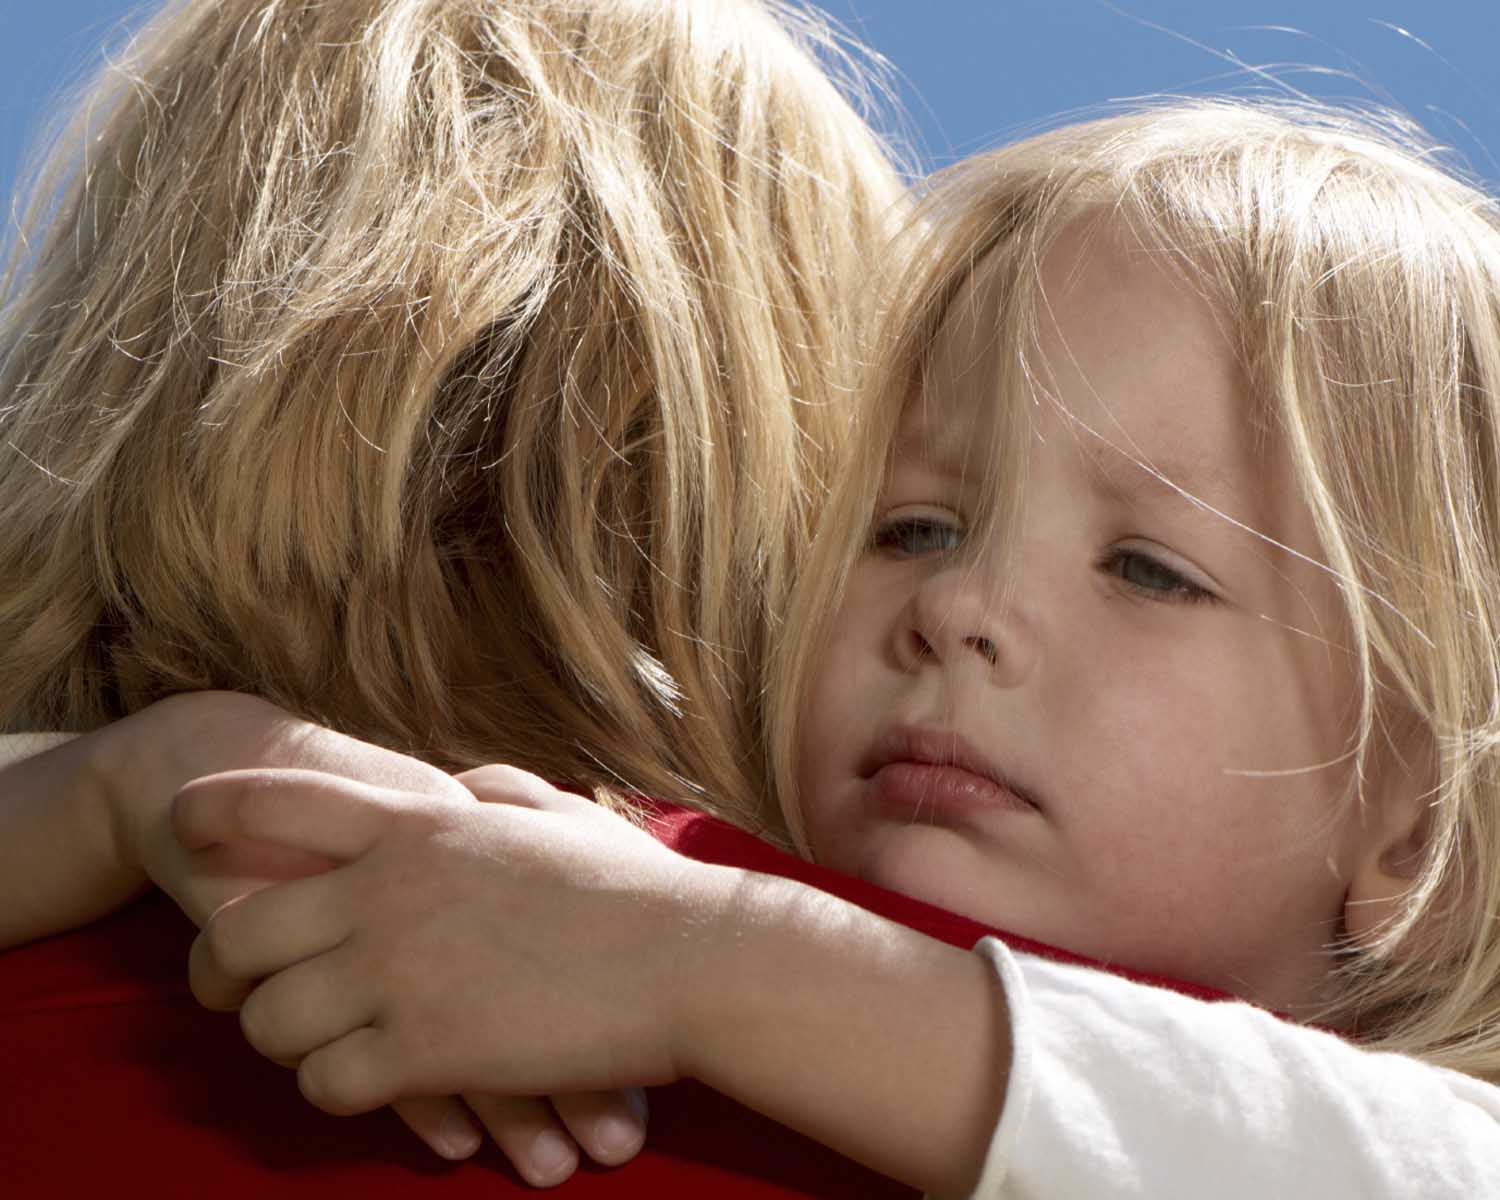 Help your child through separation anxiety by letting them know you are there for them.